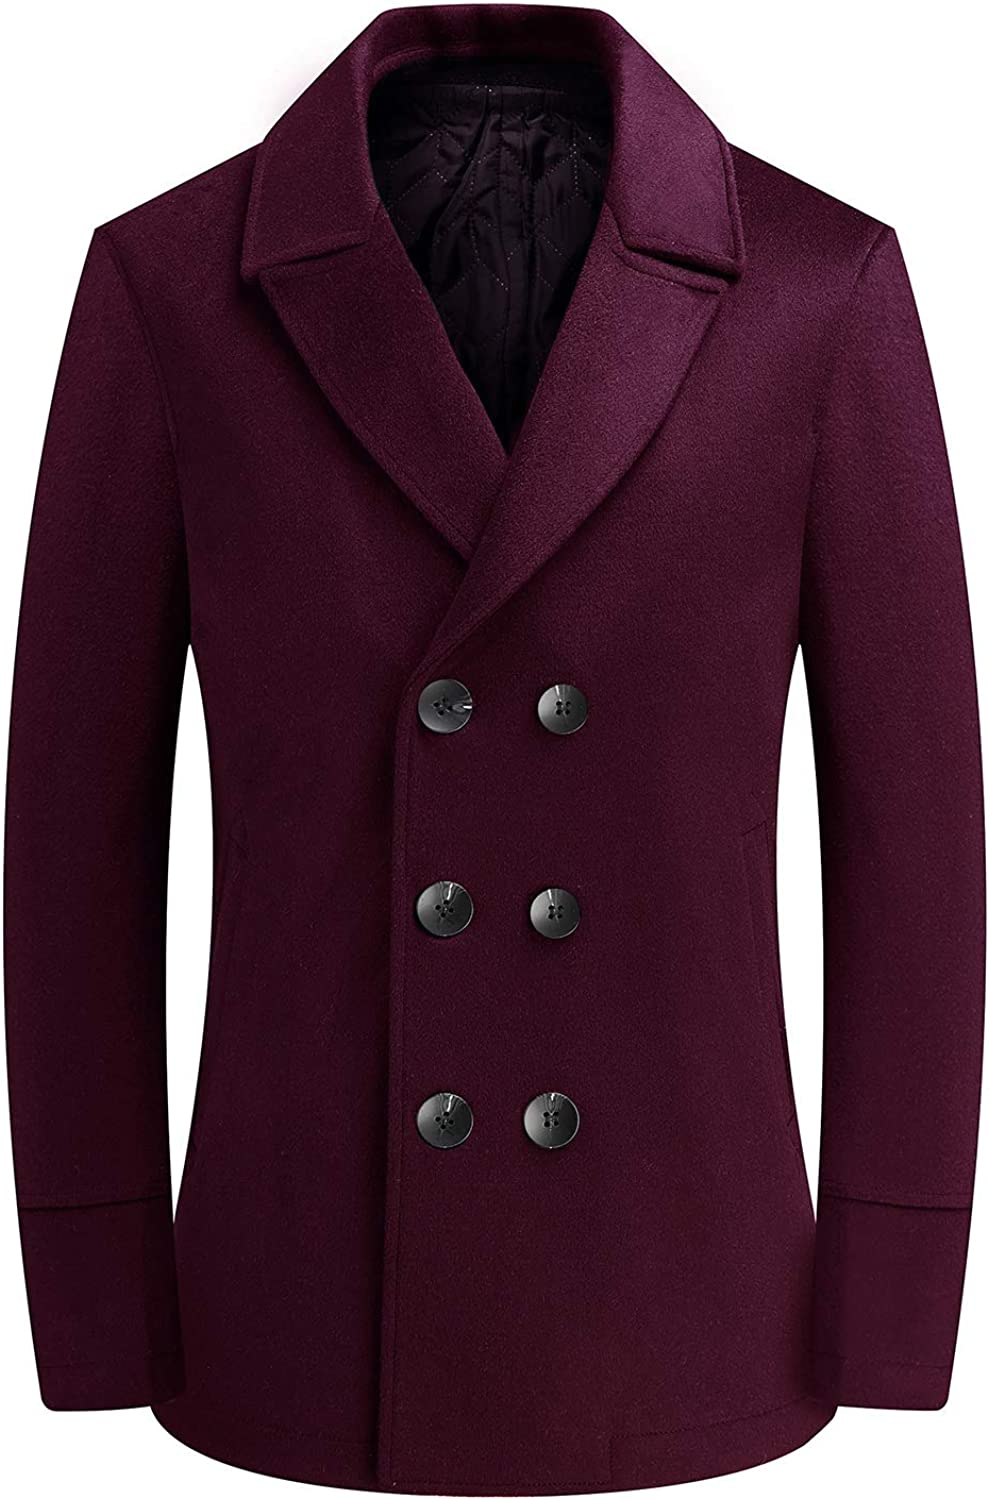 Yingqible Mens Double Breasted Pea Wool Coat Vintage Navy Jacket Padded Lined Reefer Warm Winter Overcoat